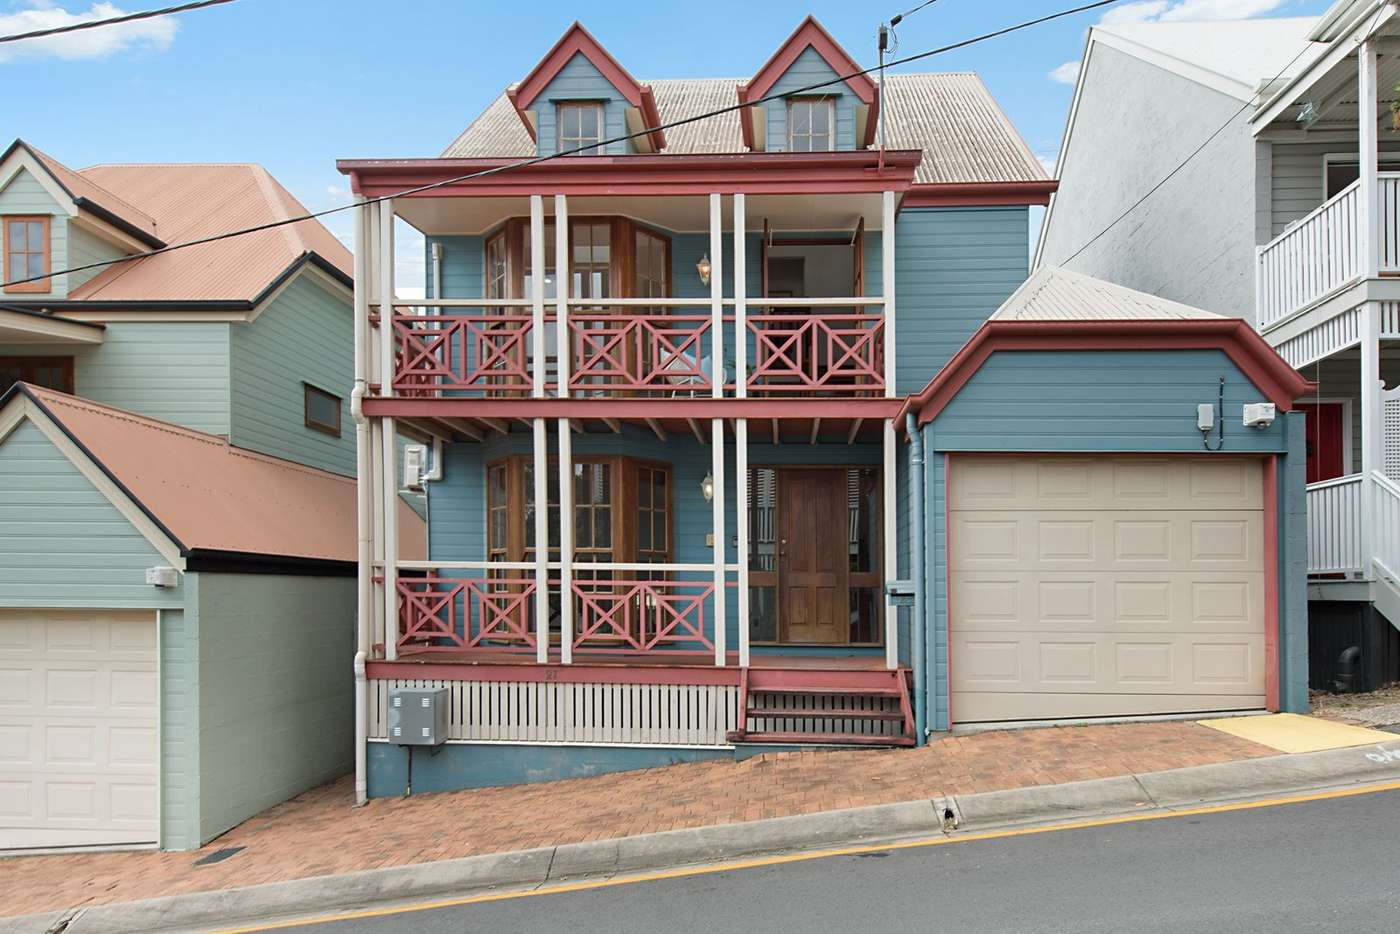 Main view of Homely house listing, 27 Sexton Street, Petrie Terrace QLD 4000